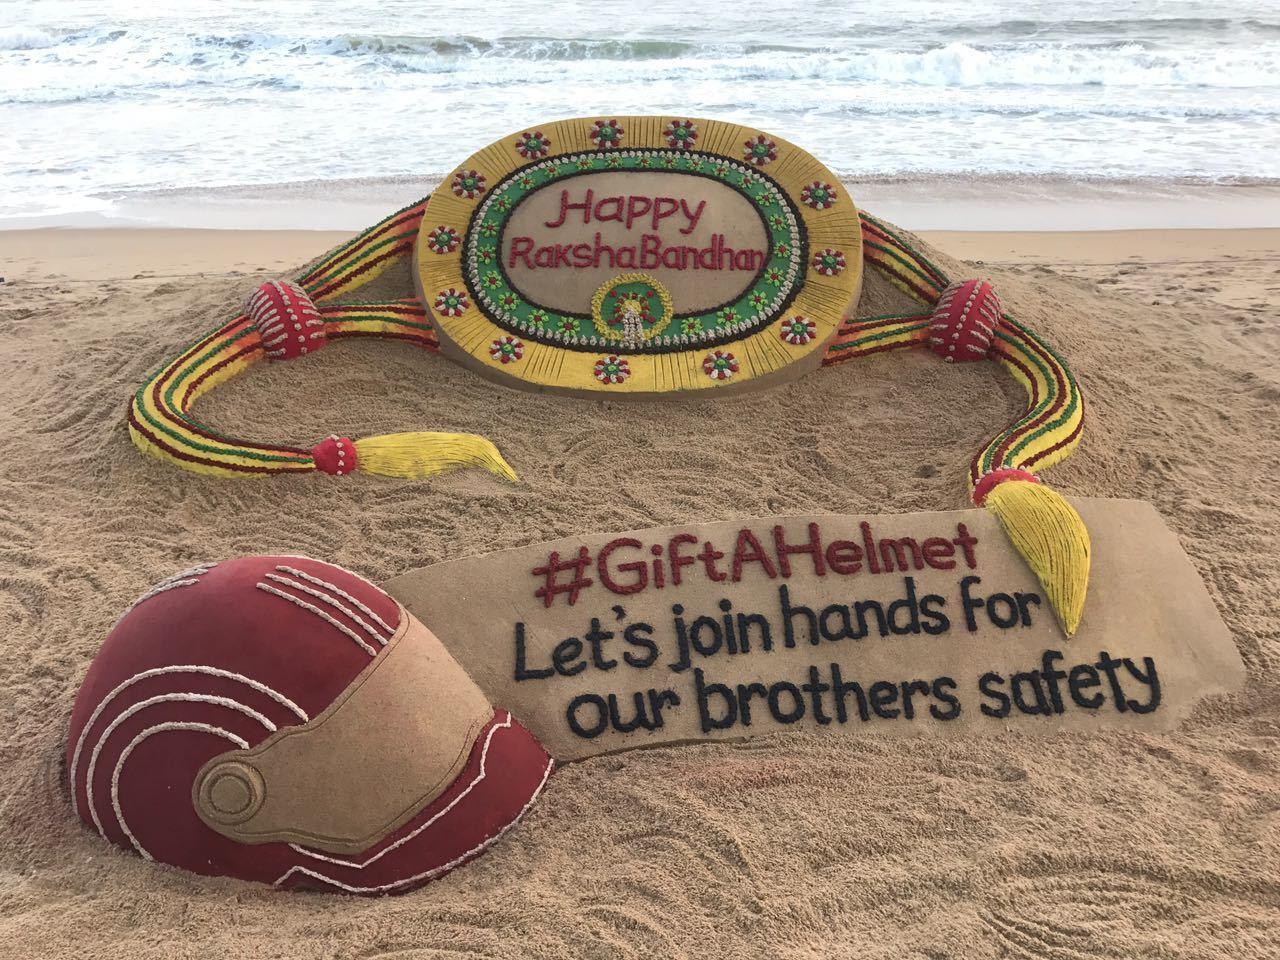 Raksha Bandhan 2017: This road safety campaign urges sisters to gift helmets to their brothers. By Sudarsan Pattnaik